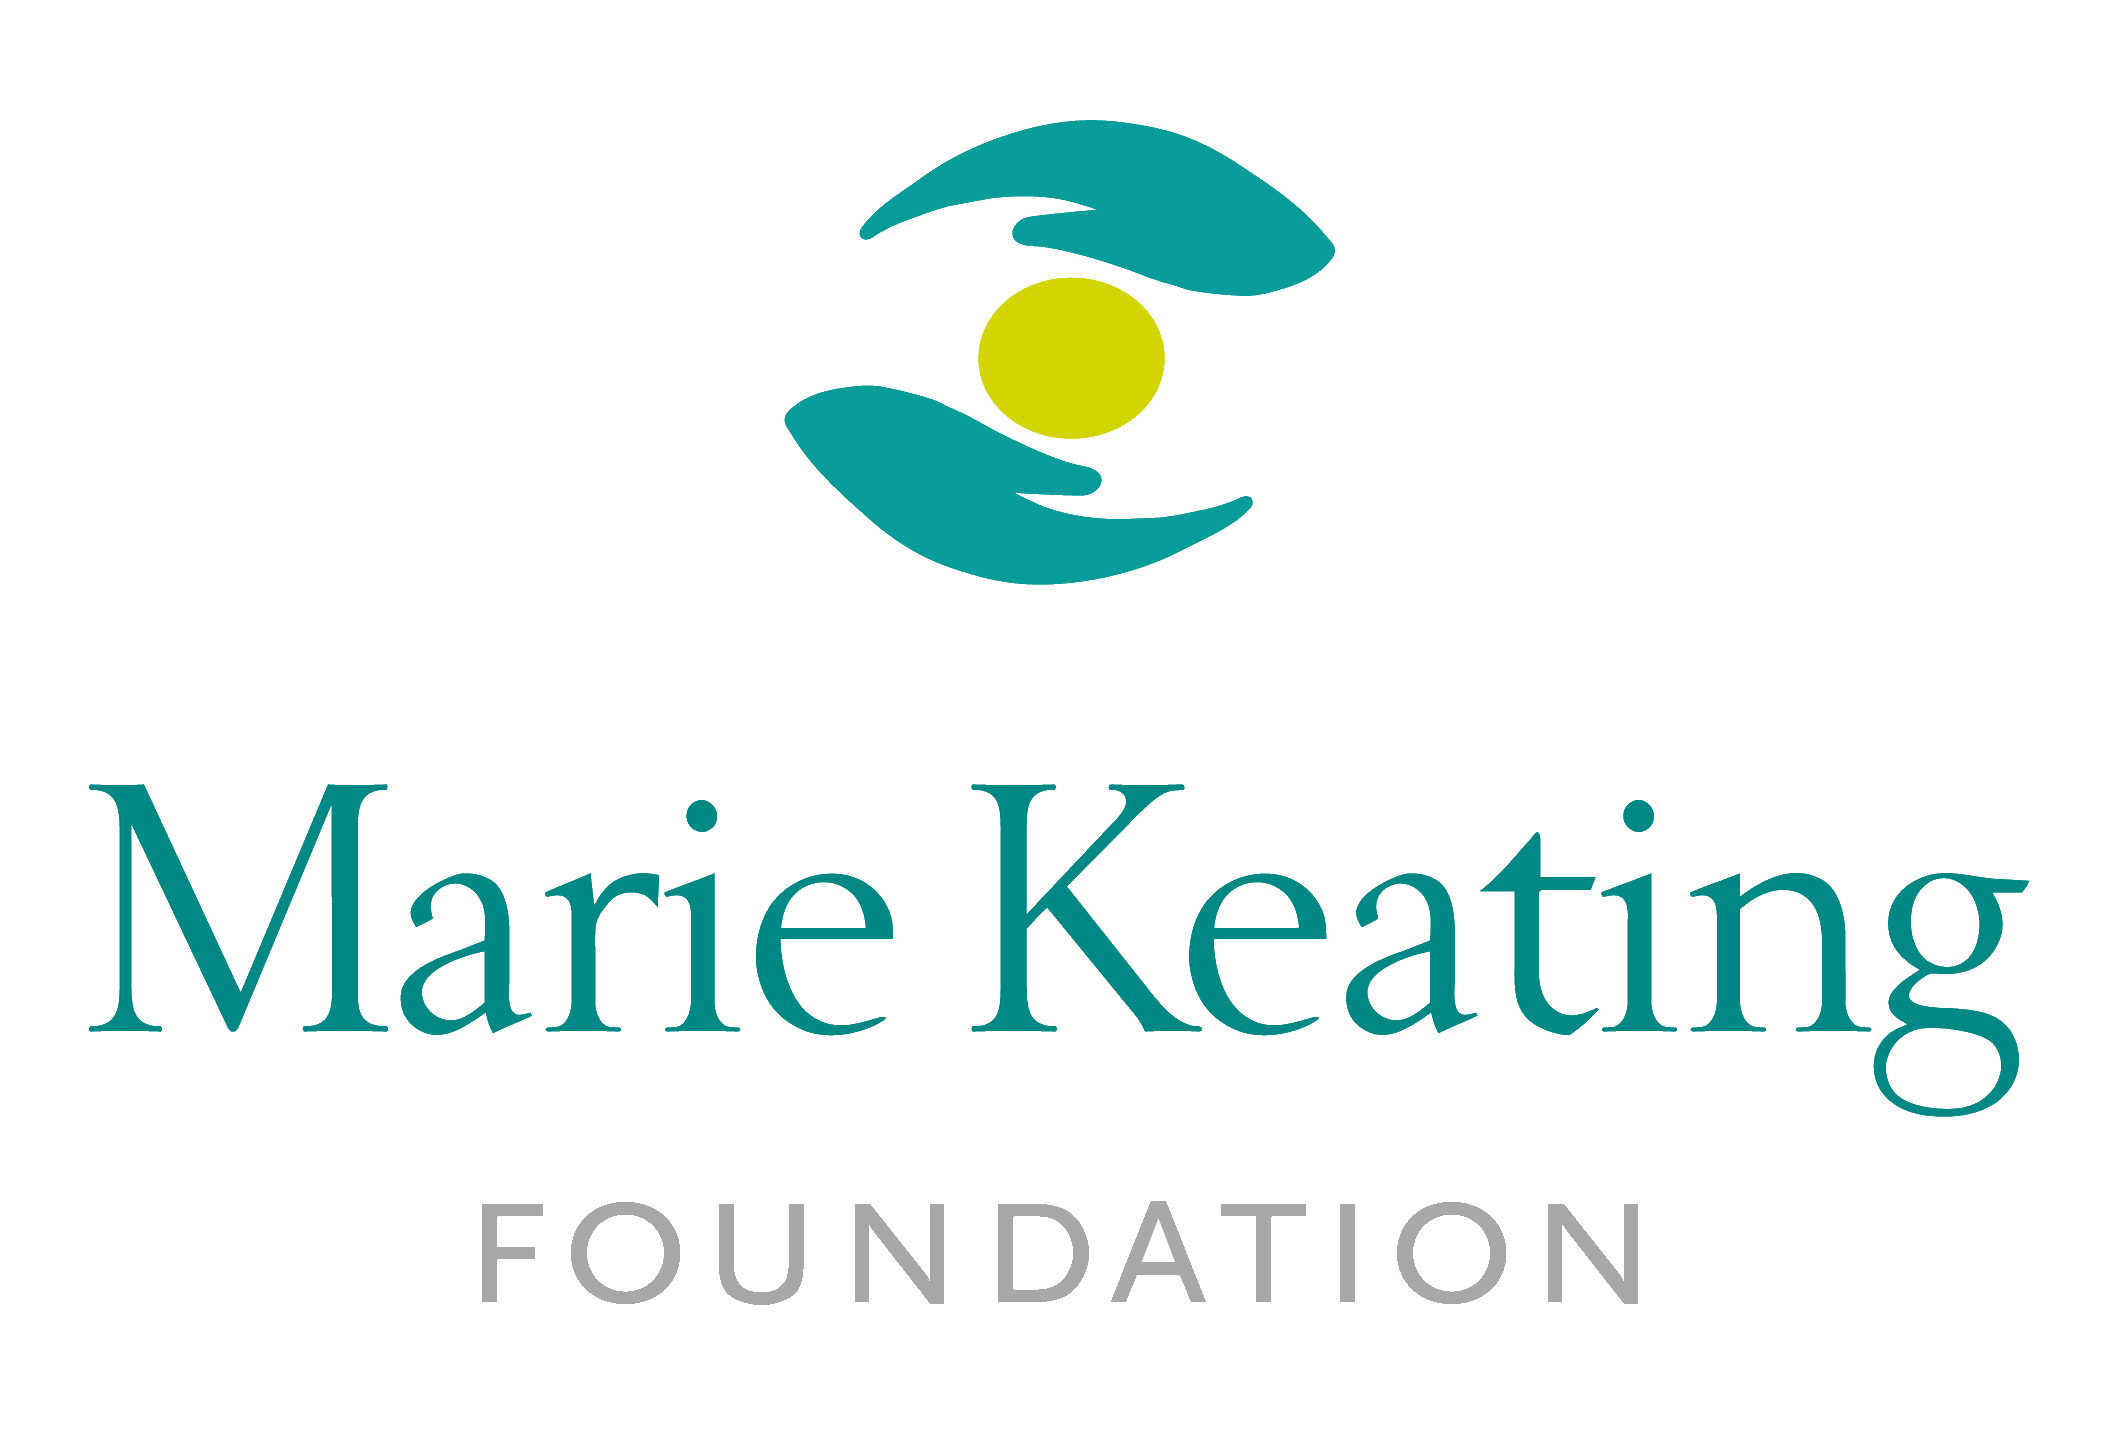 Marie Keating Foundation - Wikipedia